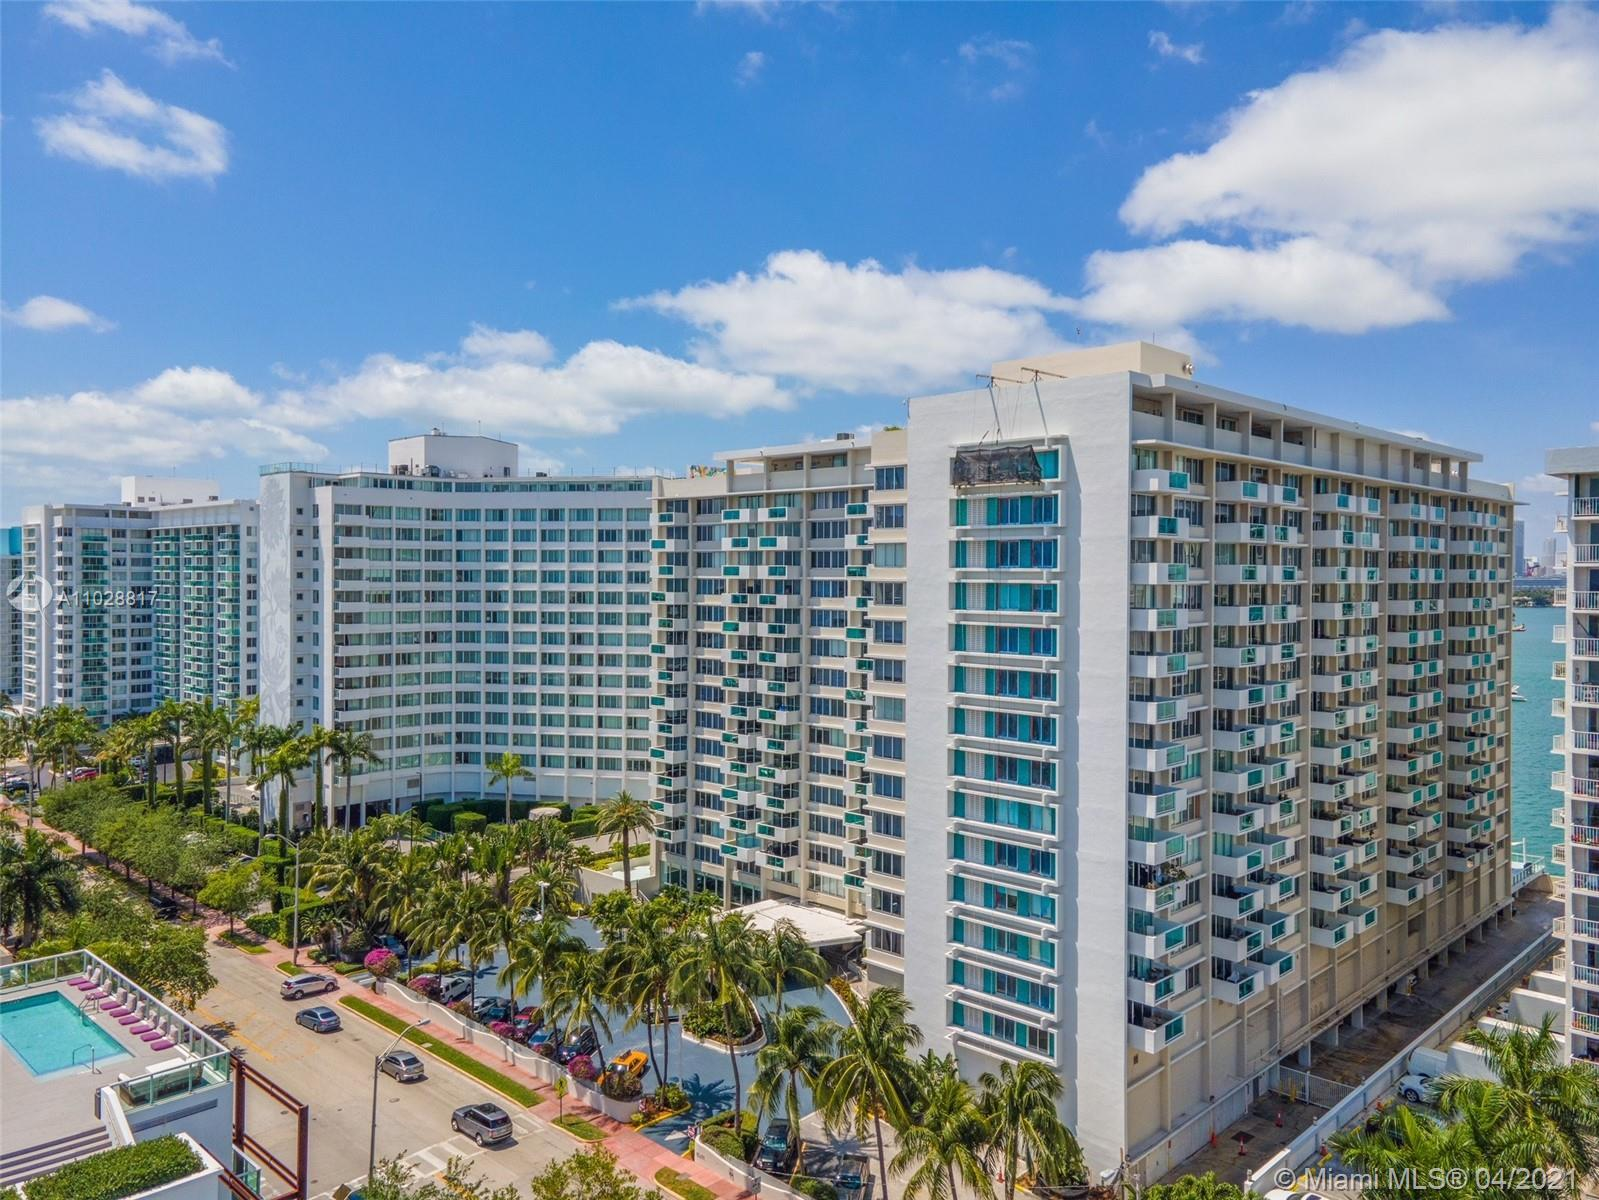 OWN THIS BEAUTIFUL AND OVERSIZED STUDIO IN THE HEART OF MIAMI BEACH FL! AT THE FAMOUS MIRADOR CONDO!